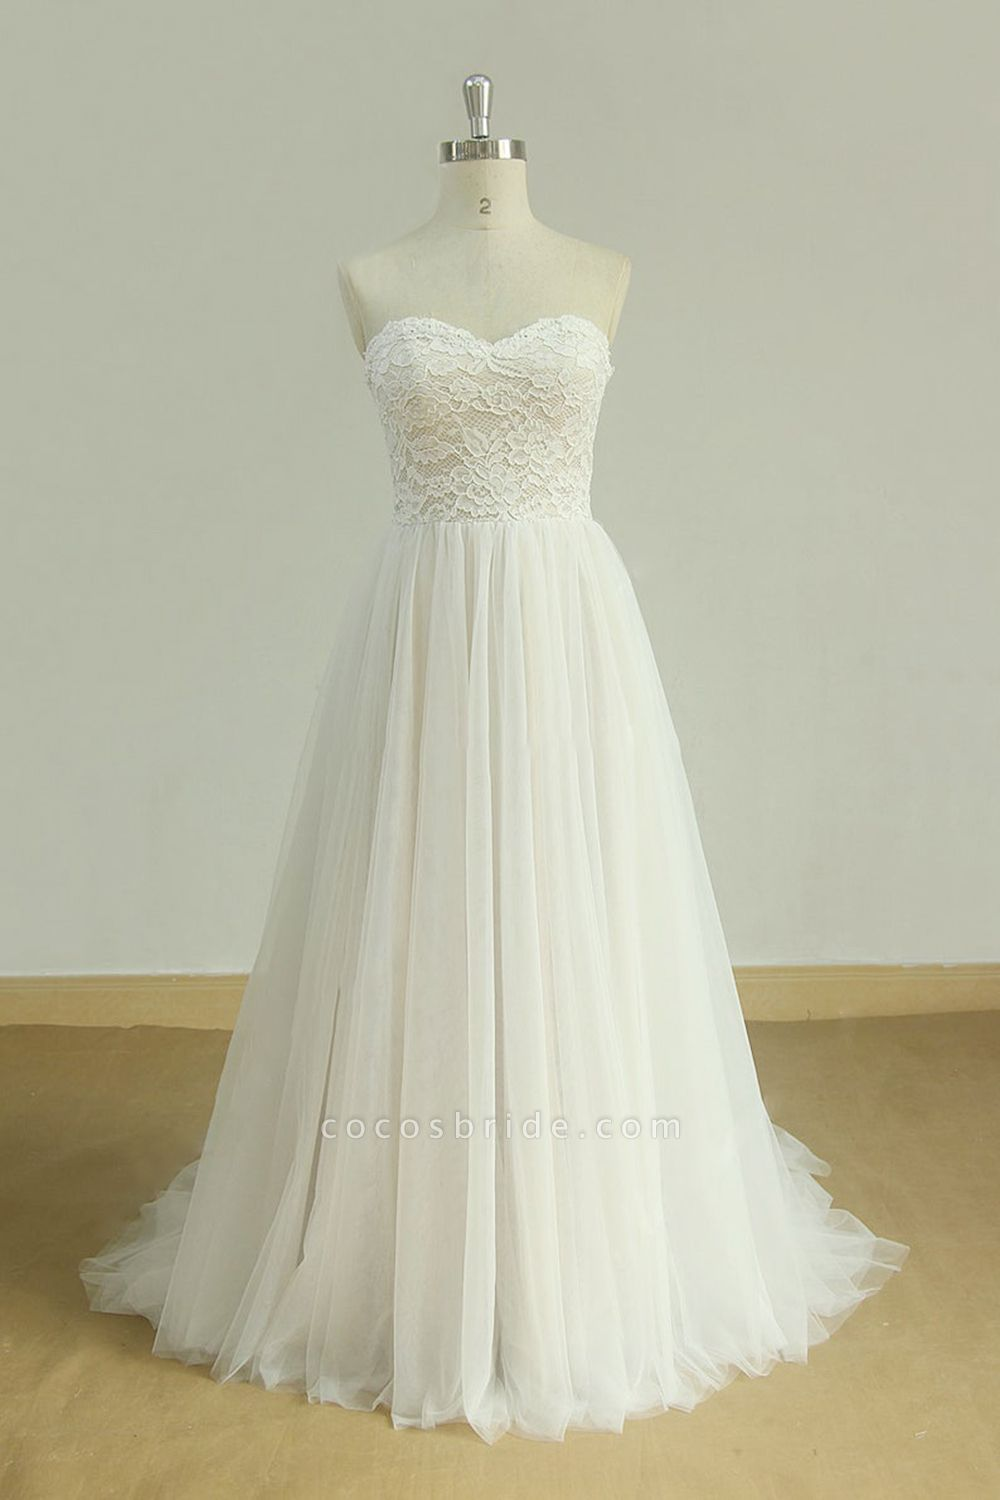 Lace-up Strapless Tulle A-line Wedding Dress